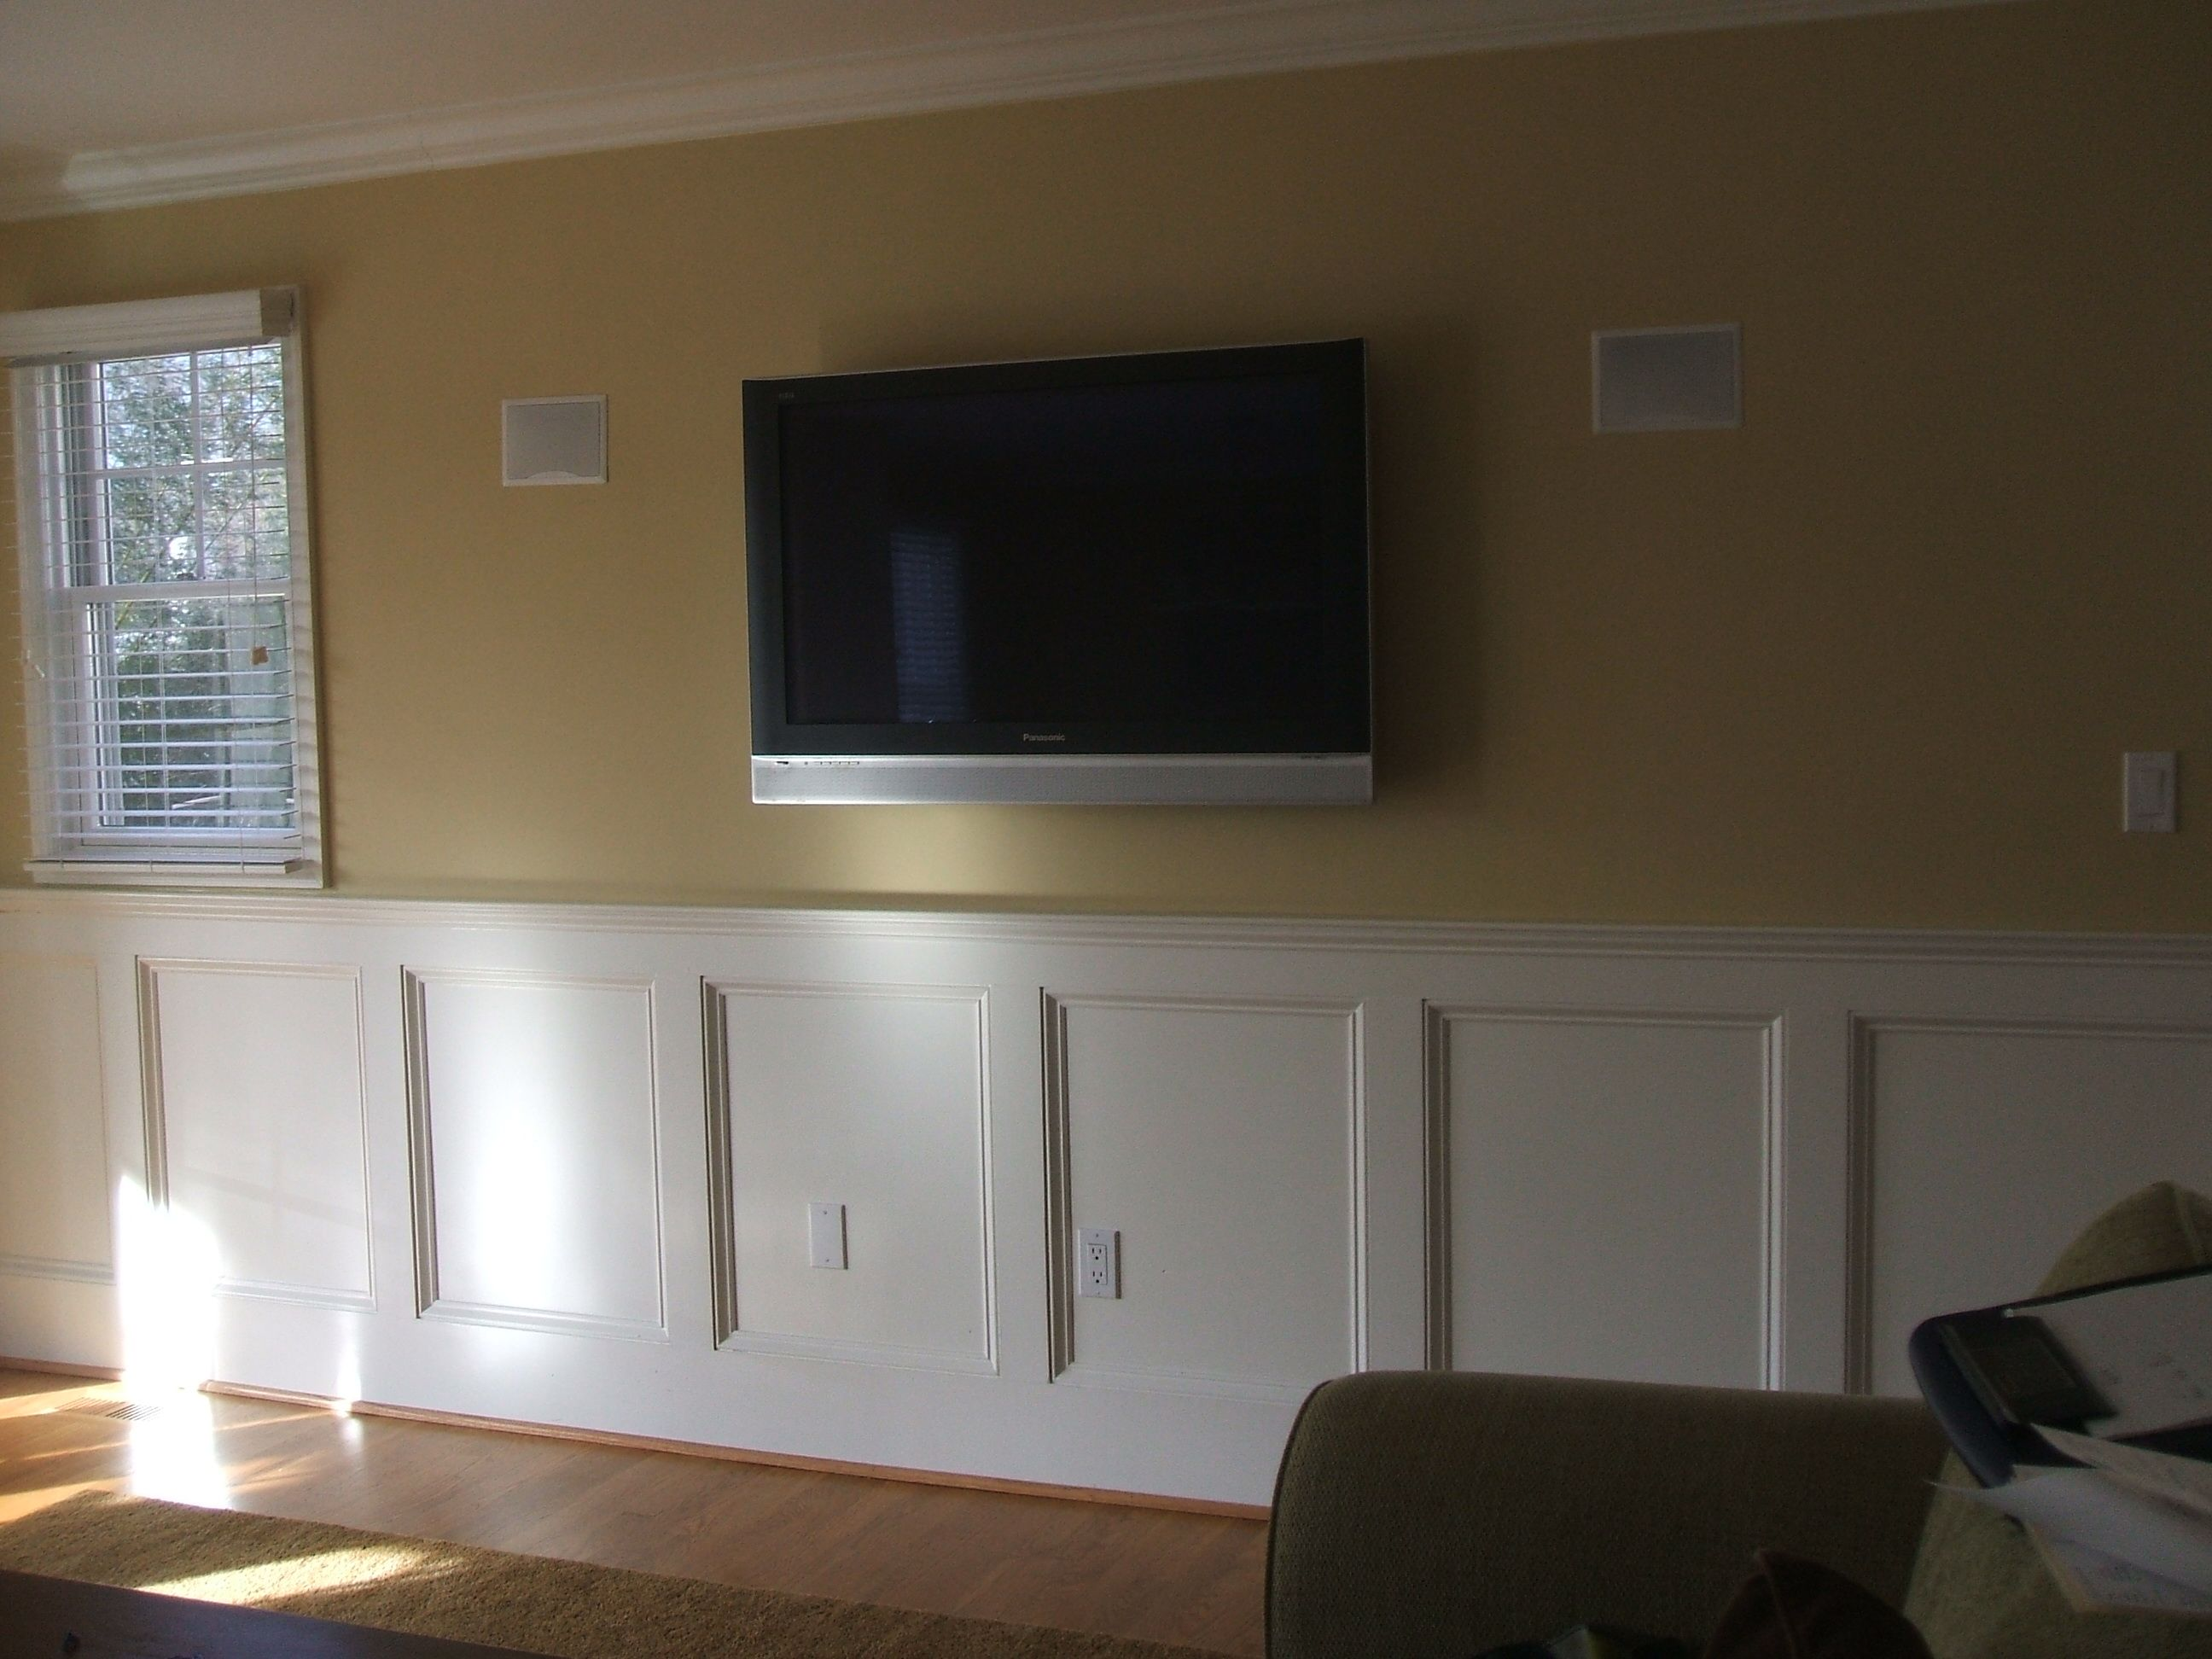 Wainscot solutions inc custom assembled wainscoting - Wainscoting Idea Number Four Shows A Classic Craftsman Recessed Panel The Wainscot Is Made Of Solid Rail Stiles Treated With